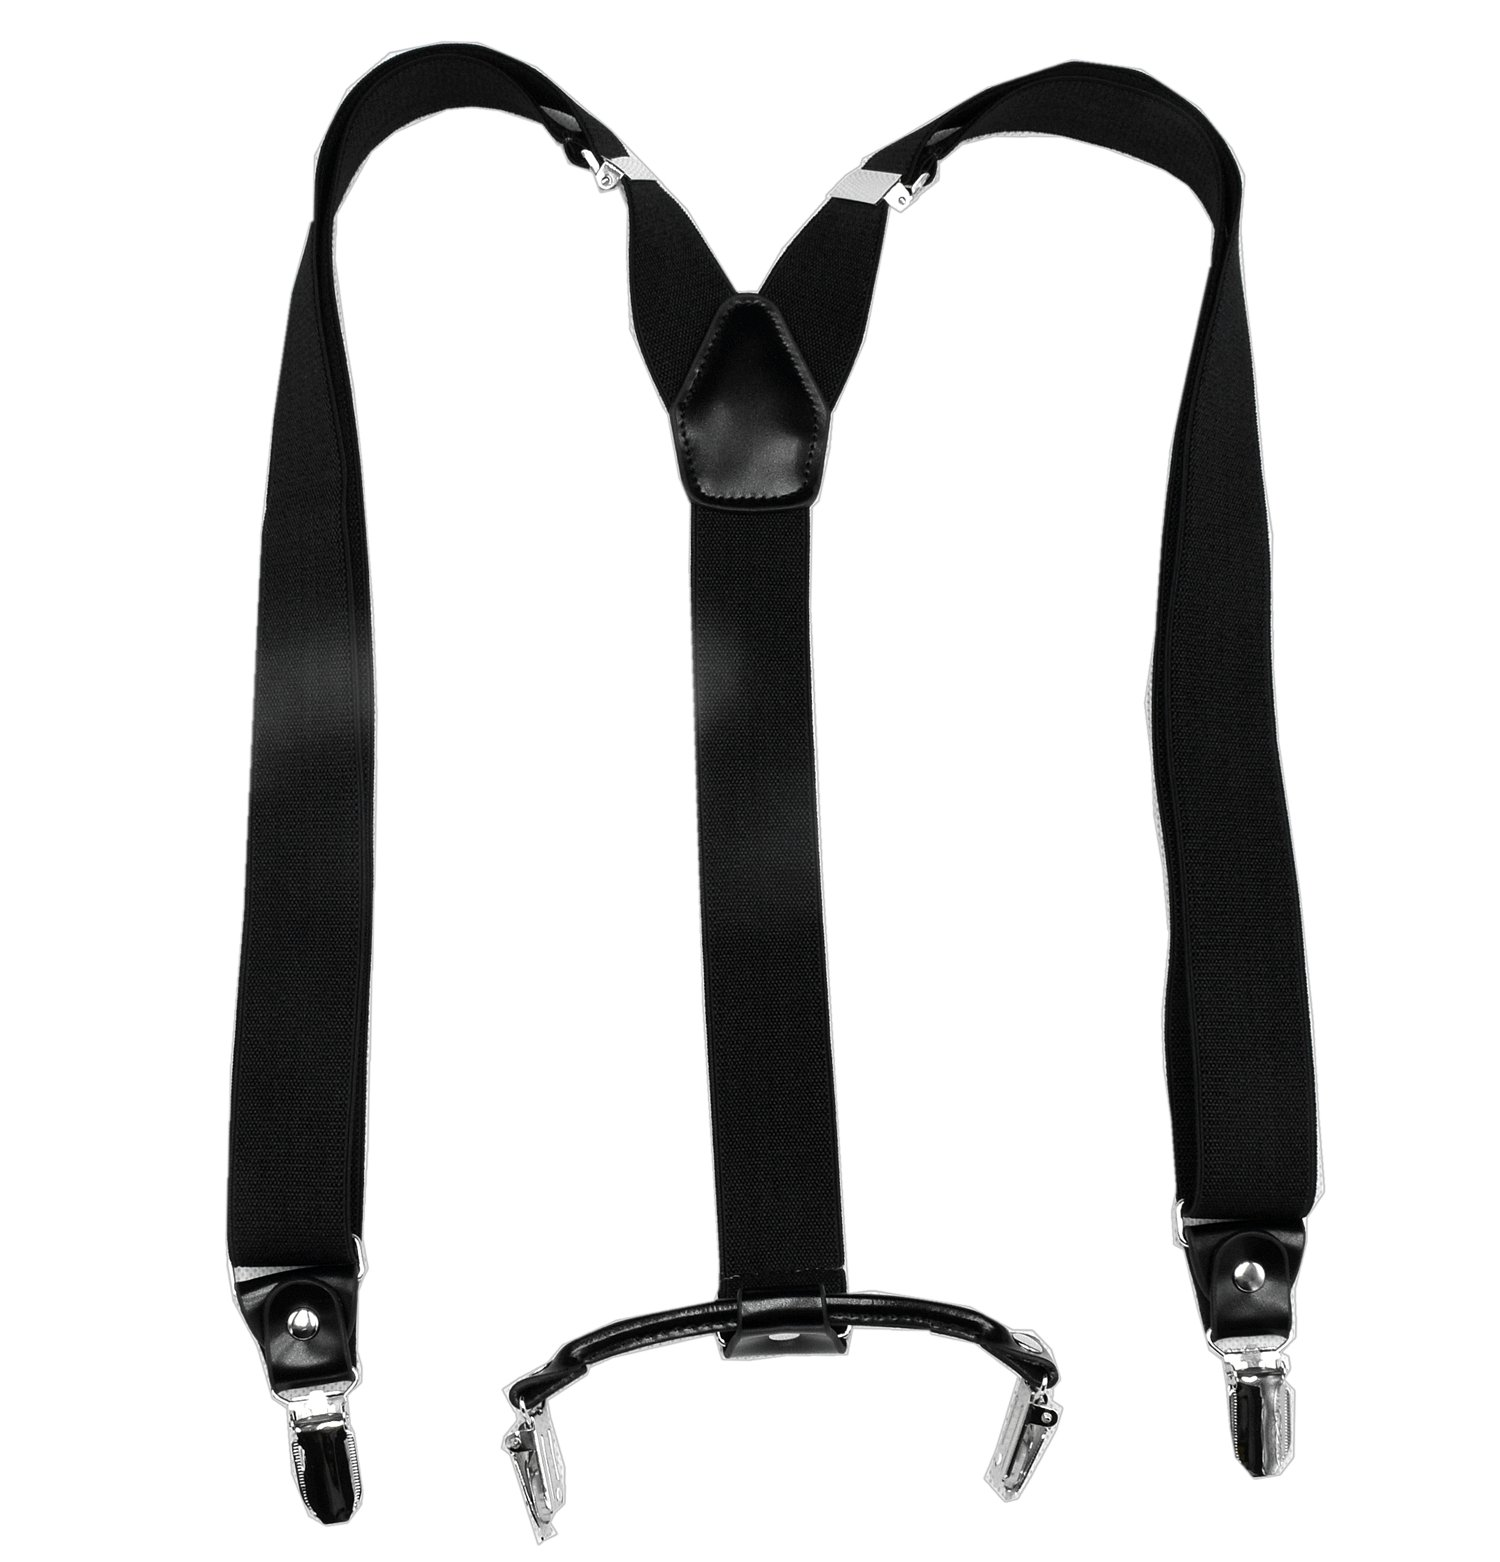 Men\'s Suspenders 30mm Y-Shape with 4 no-Slip Clips and Genuine Leather (Black, 3 cm Width) (Black, 30mm)